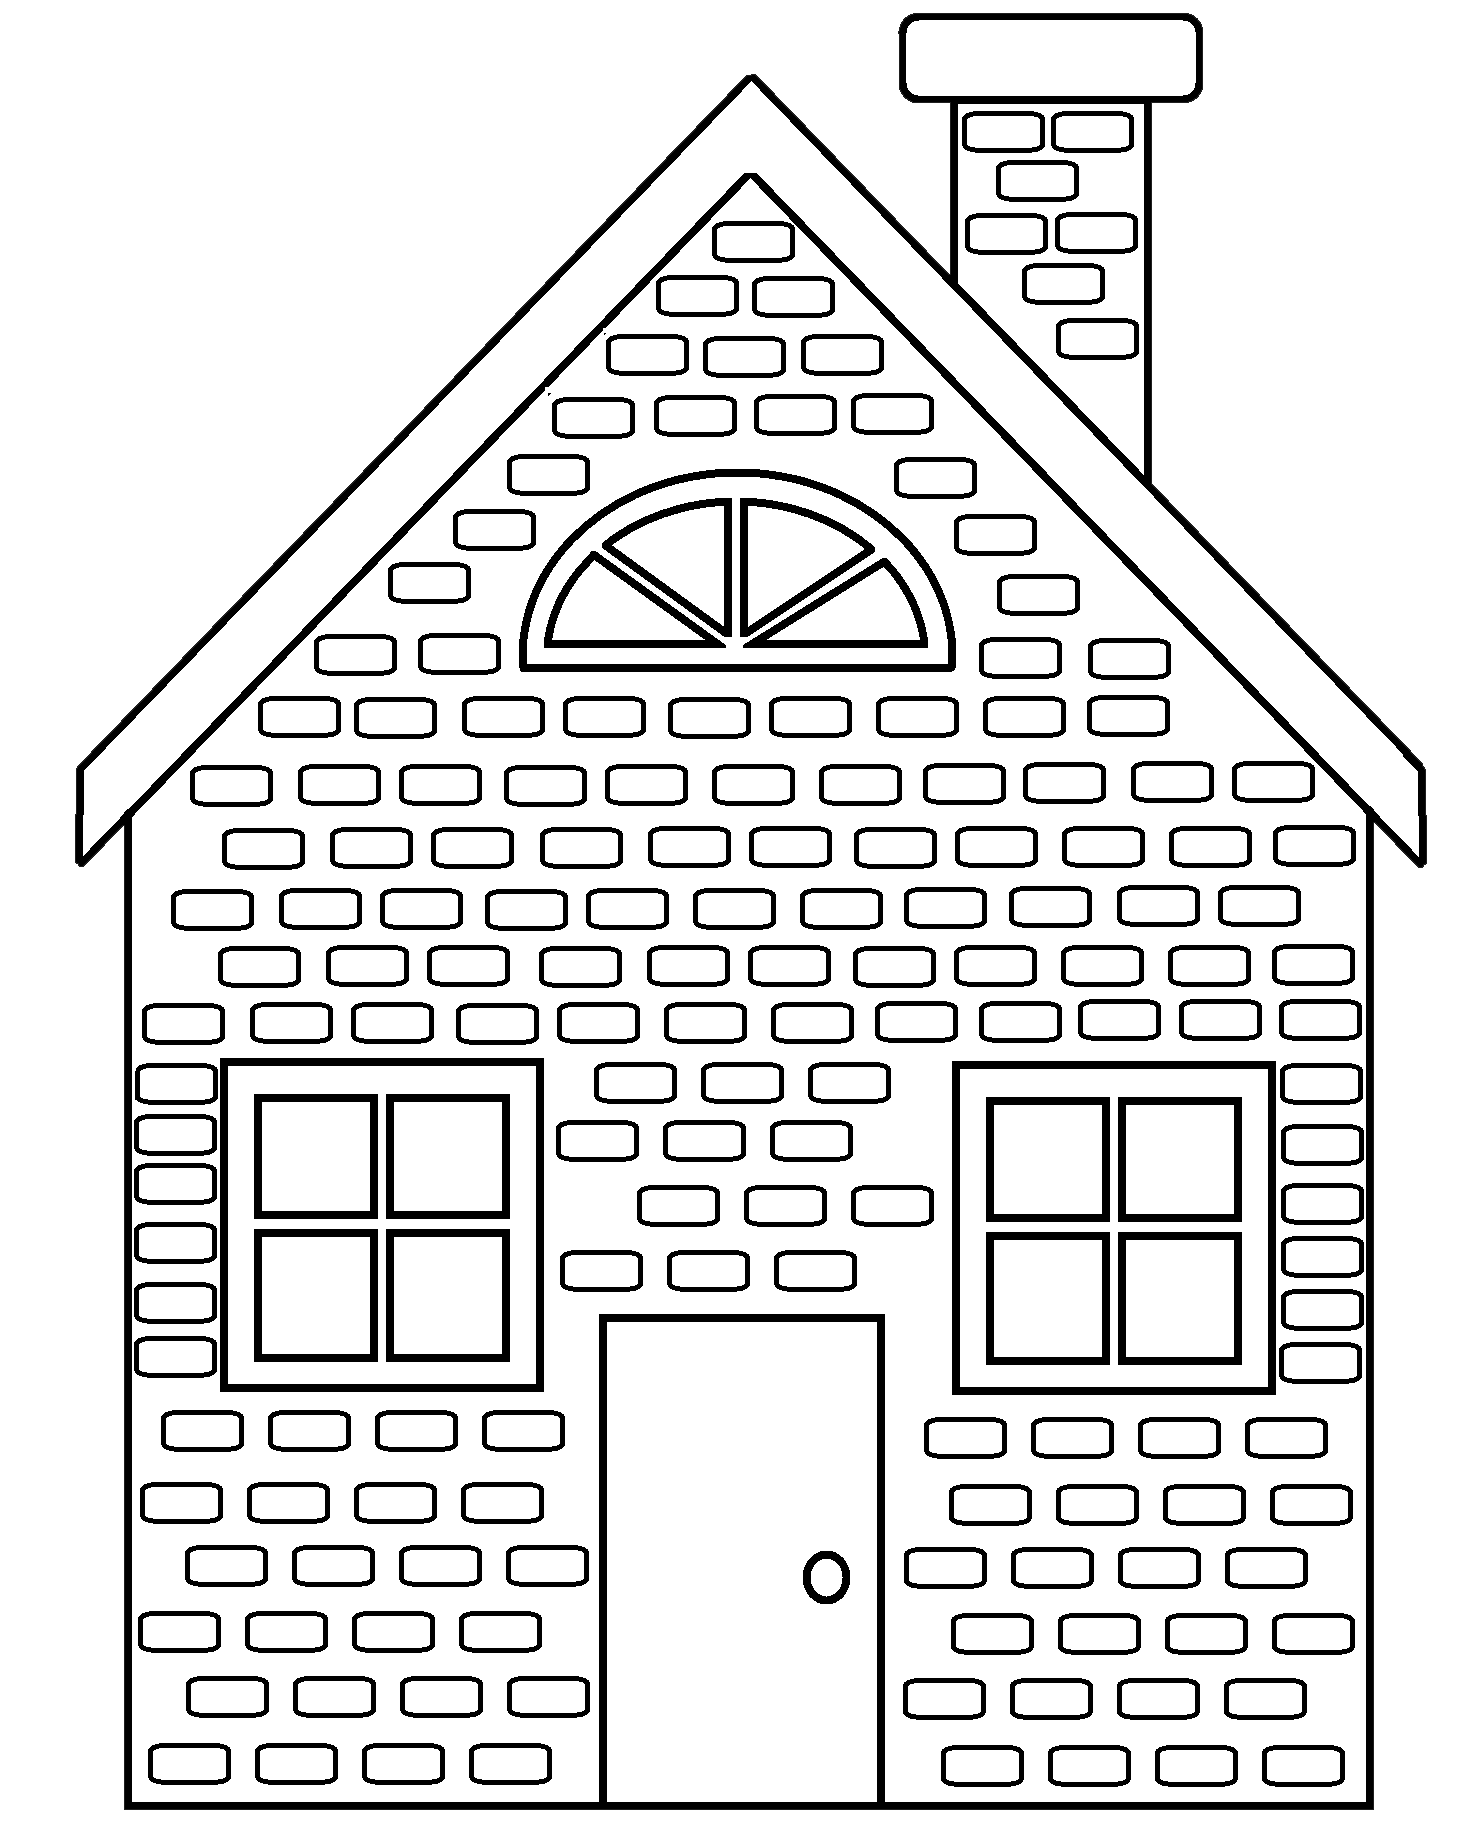 Adobe house clipart black and white free library 83+ Brick House Clipart Black And White Brick House Clipart Black ... free library